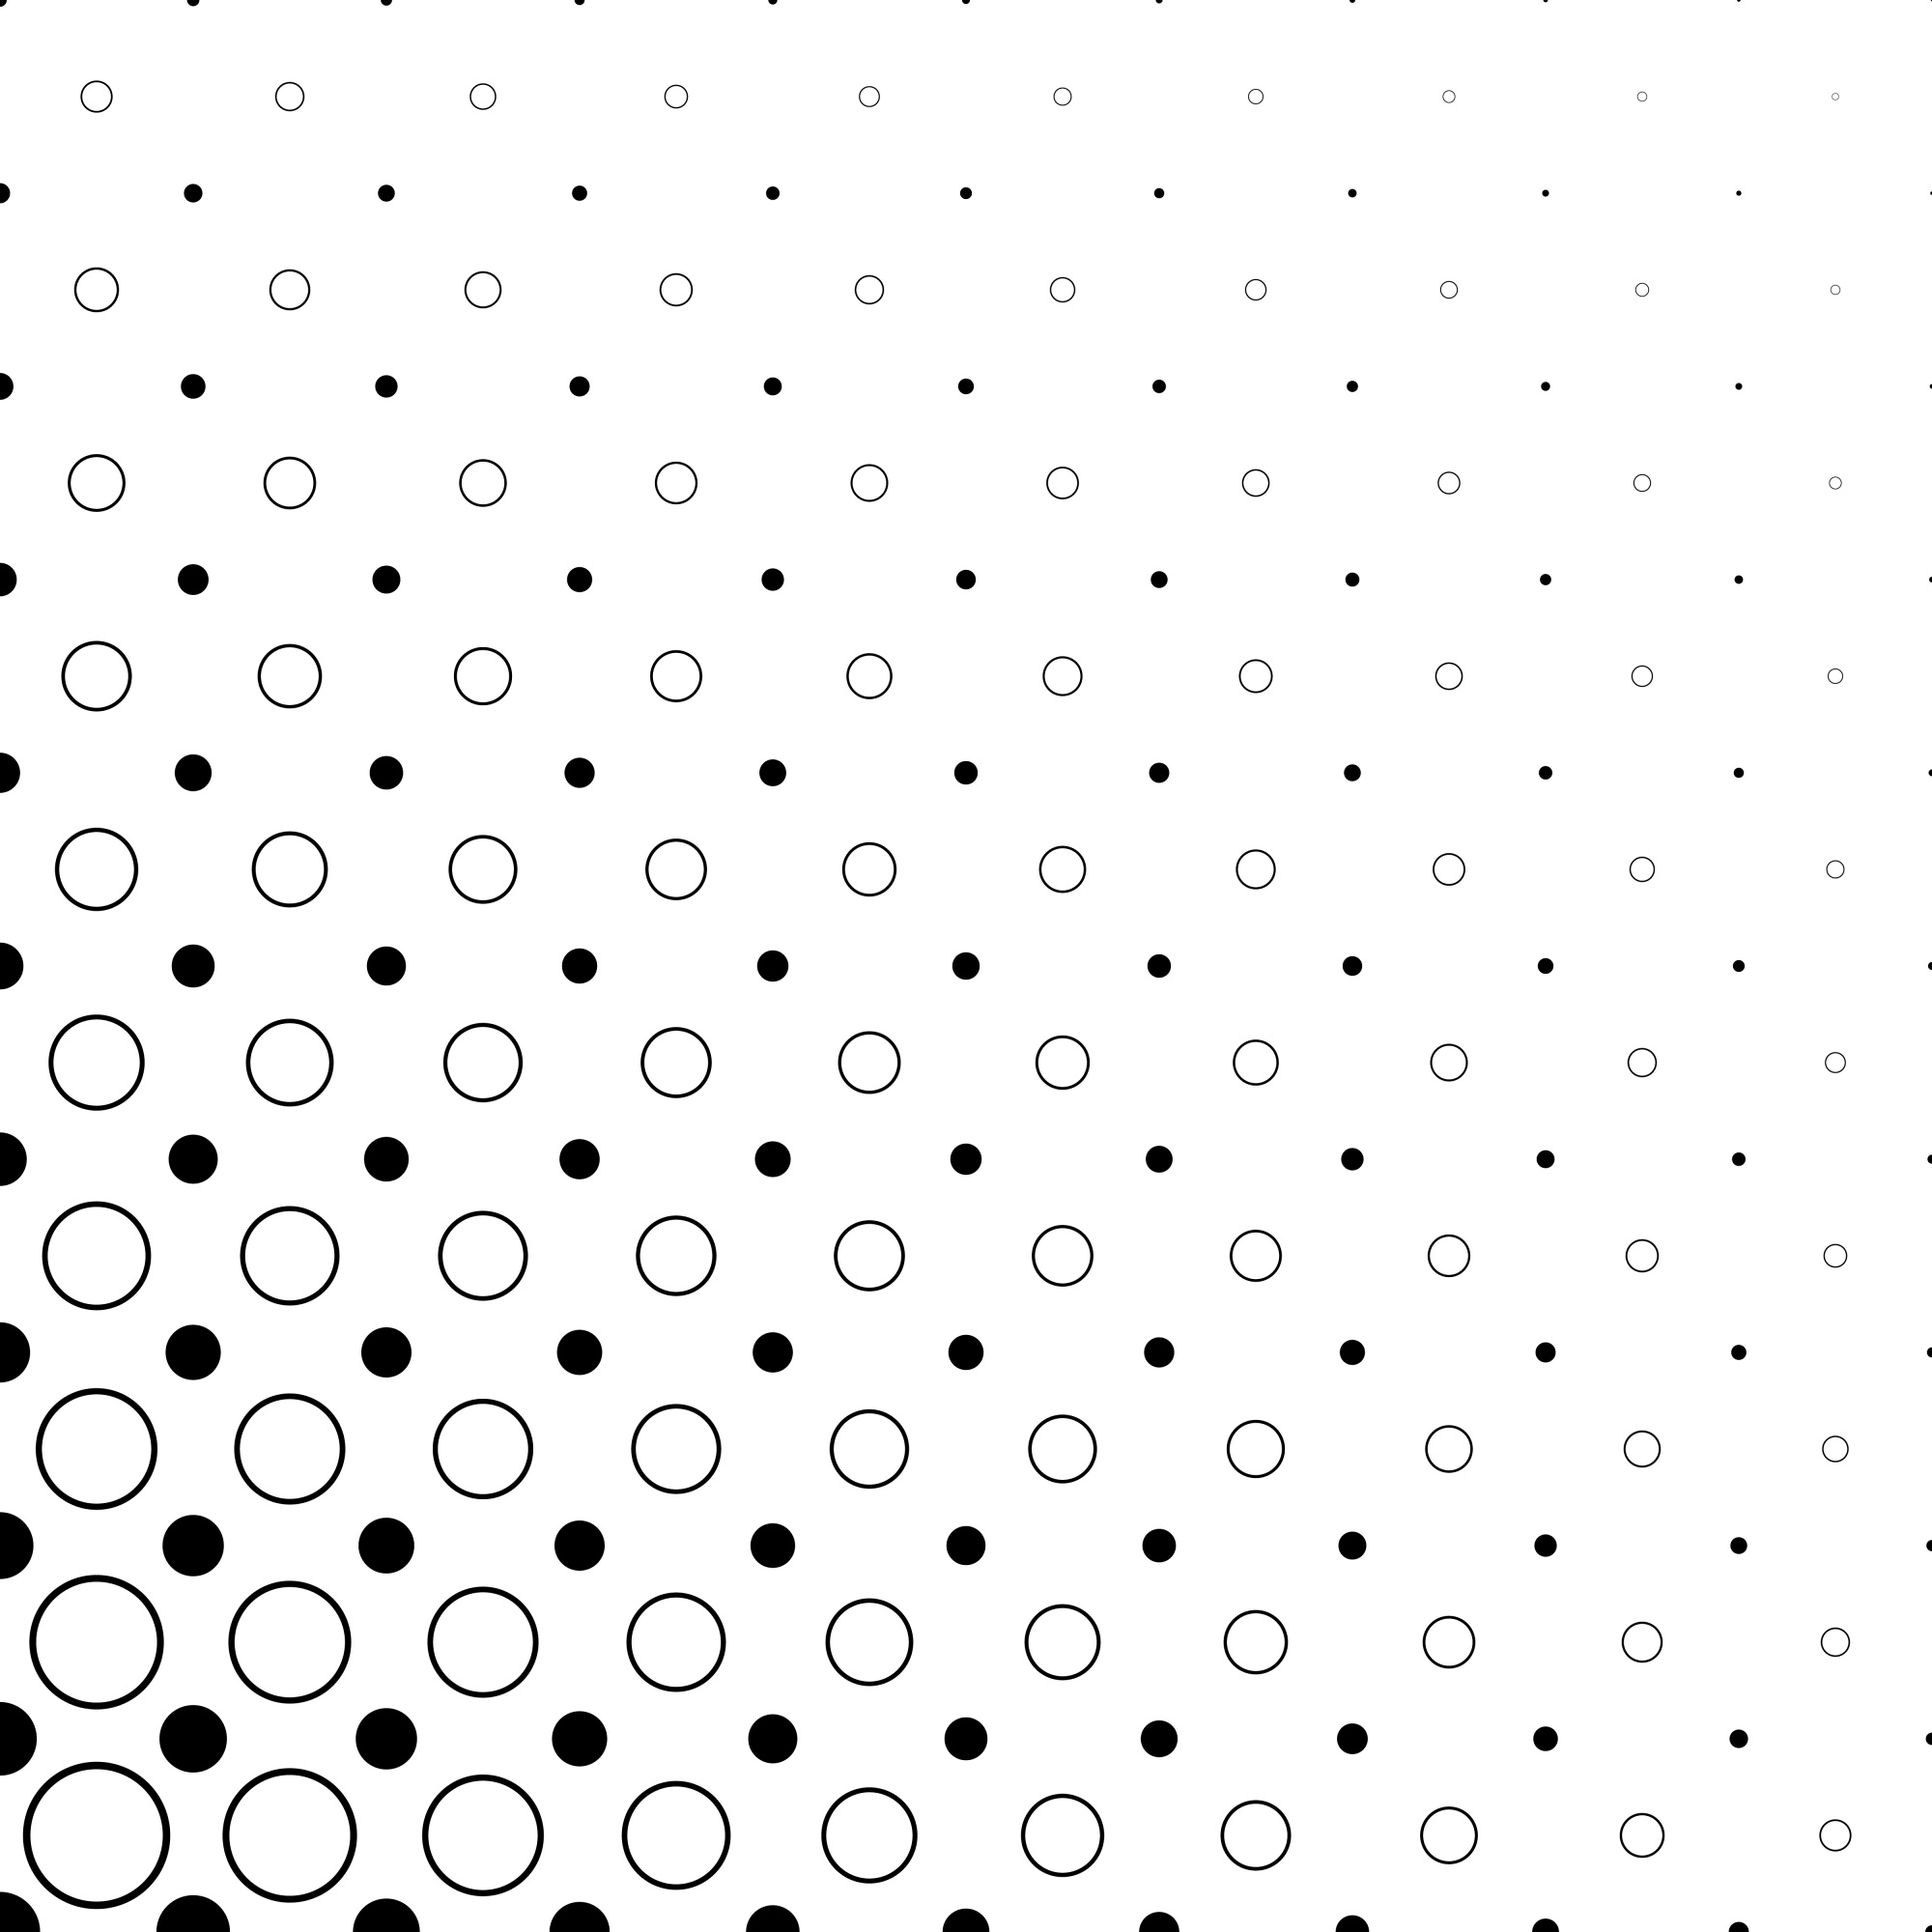 Black and white circle pattern - abstract vector background